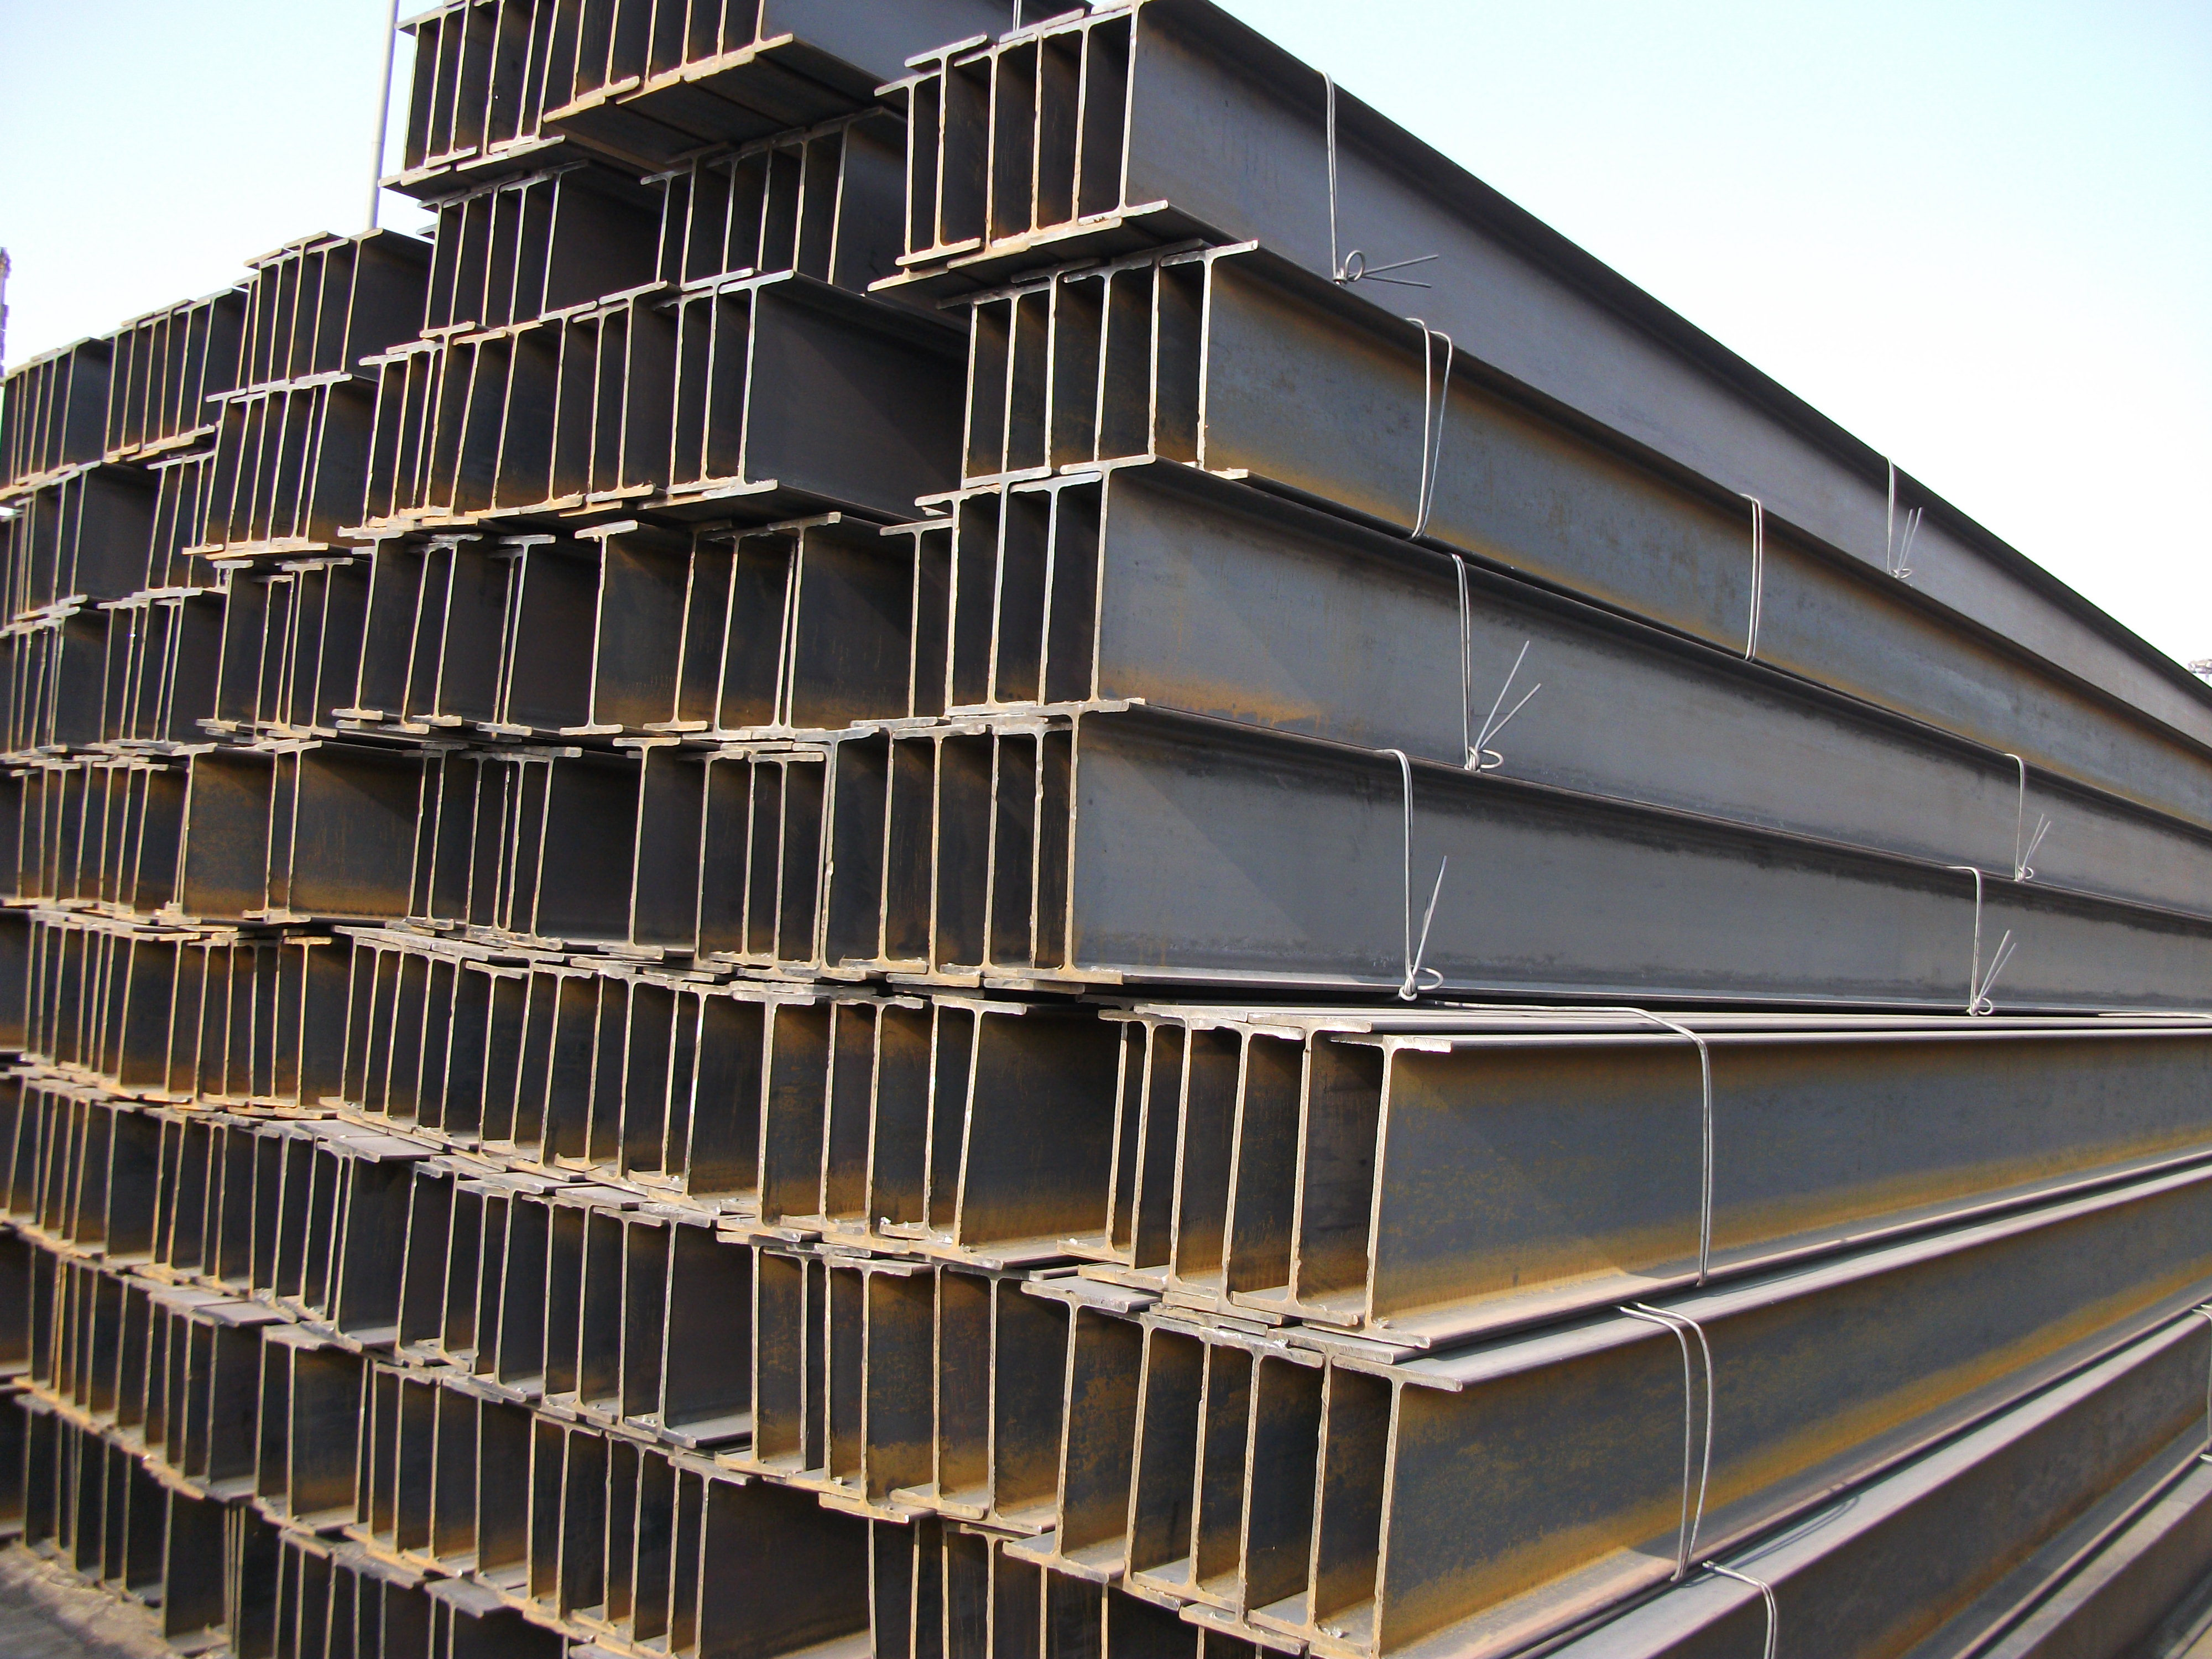 ASTM A36 Steel H Beams Used for Construction